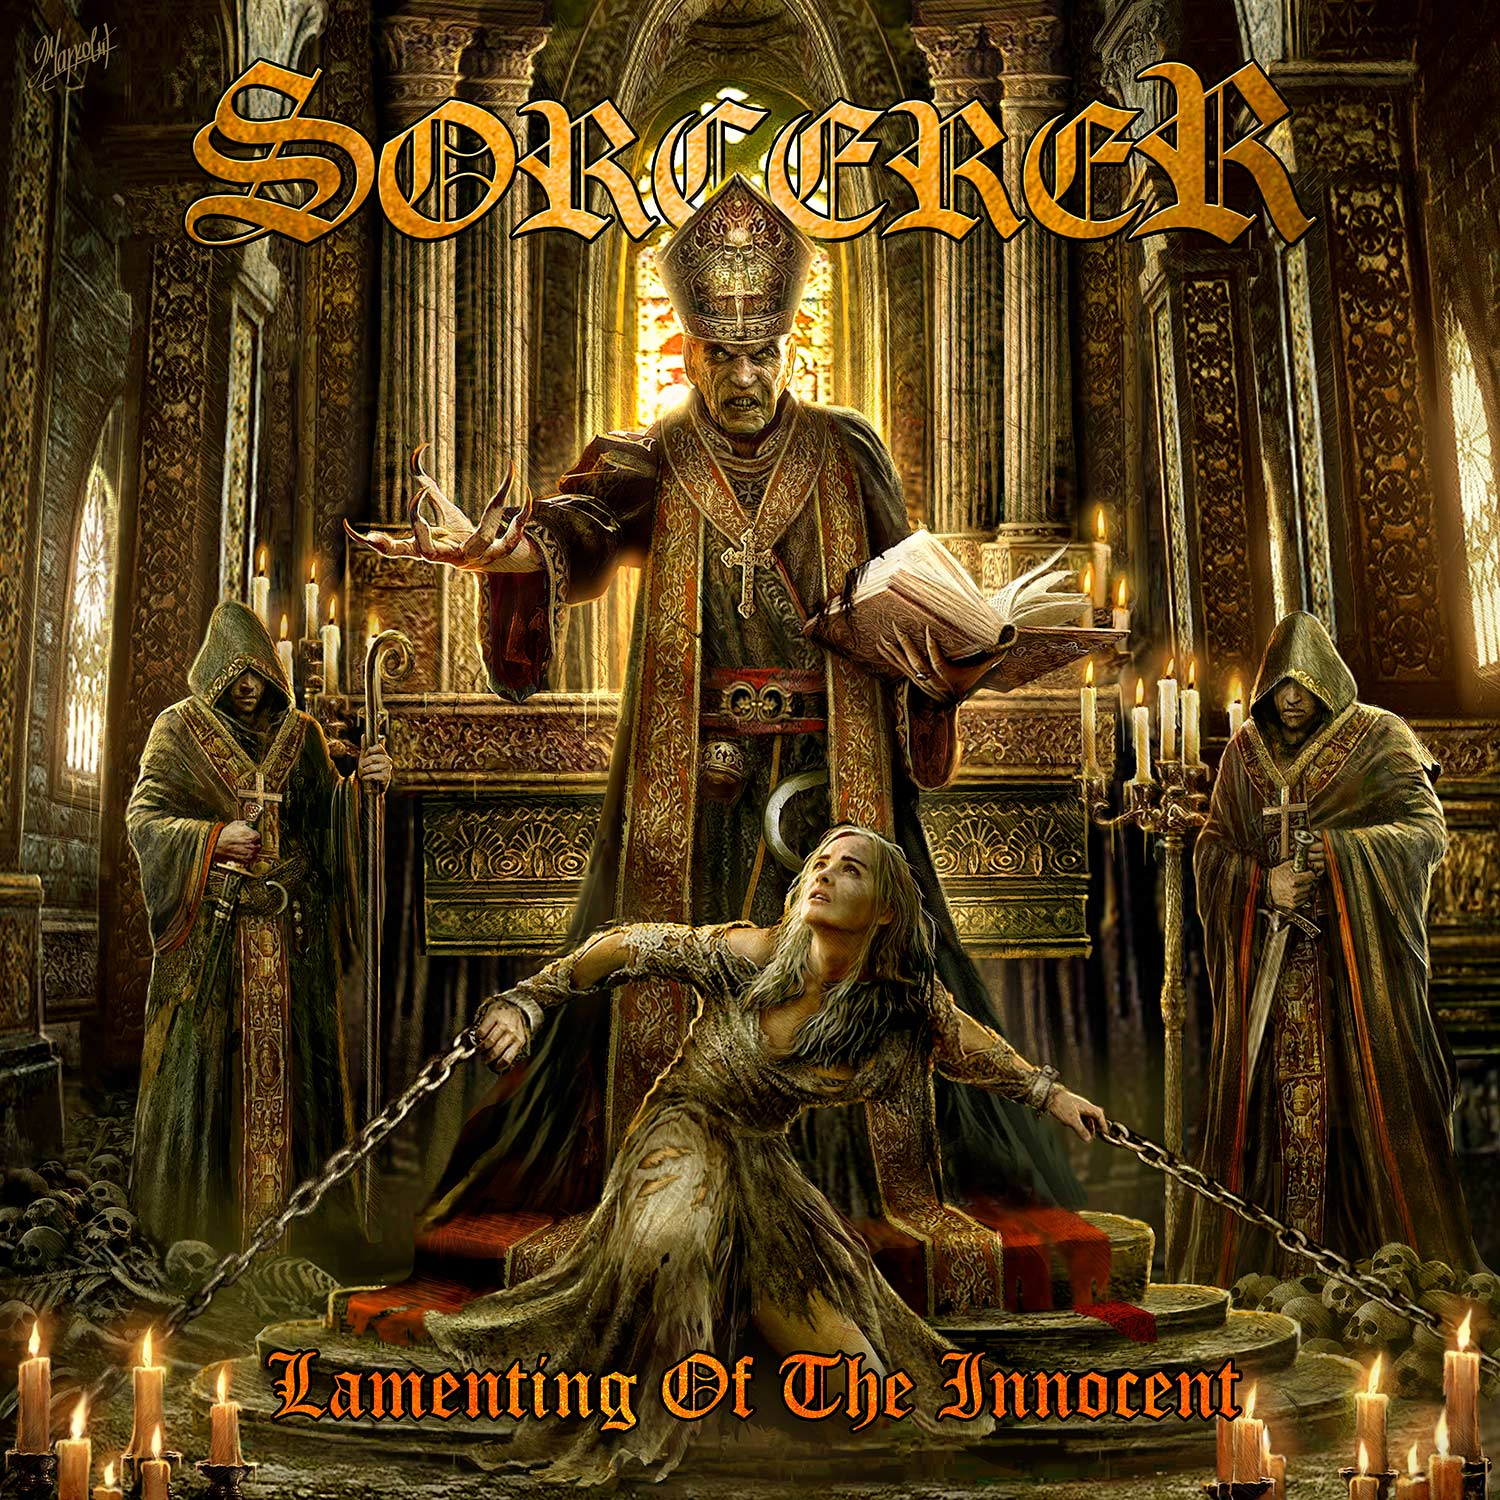 Sorcerer : Lamenting Of The Innocent